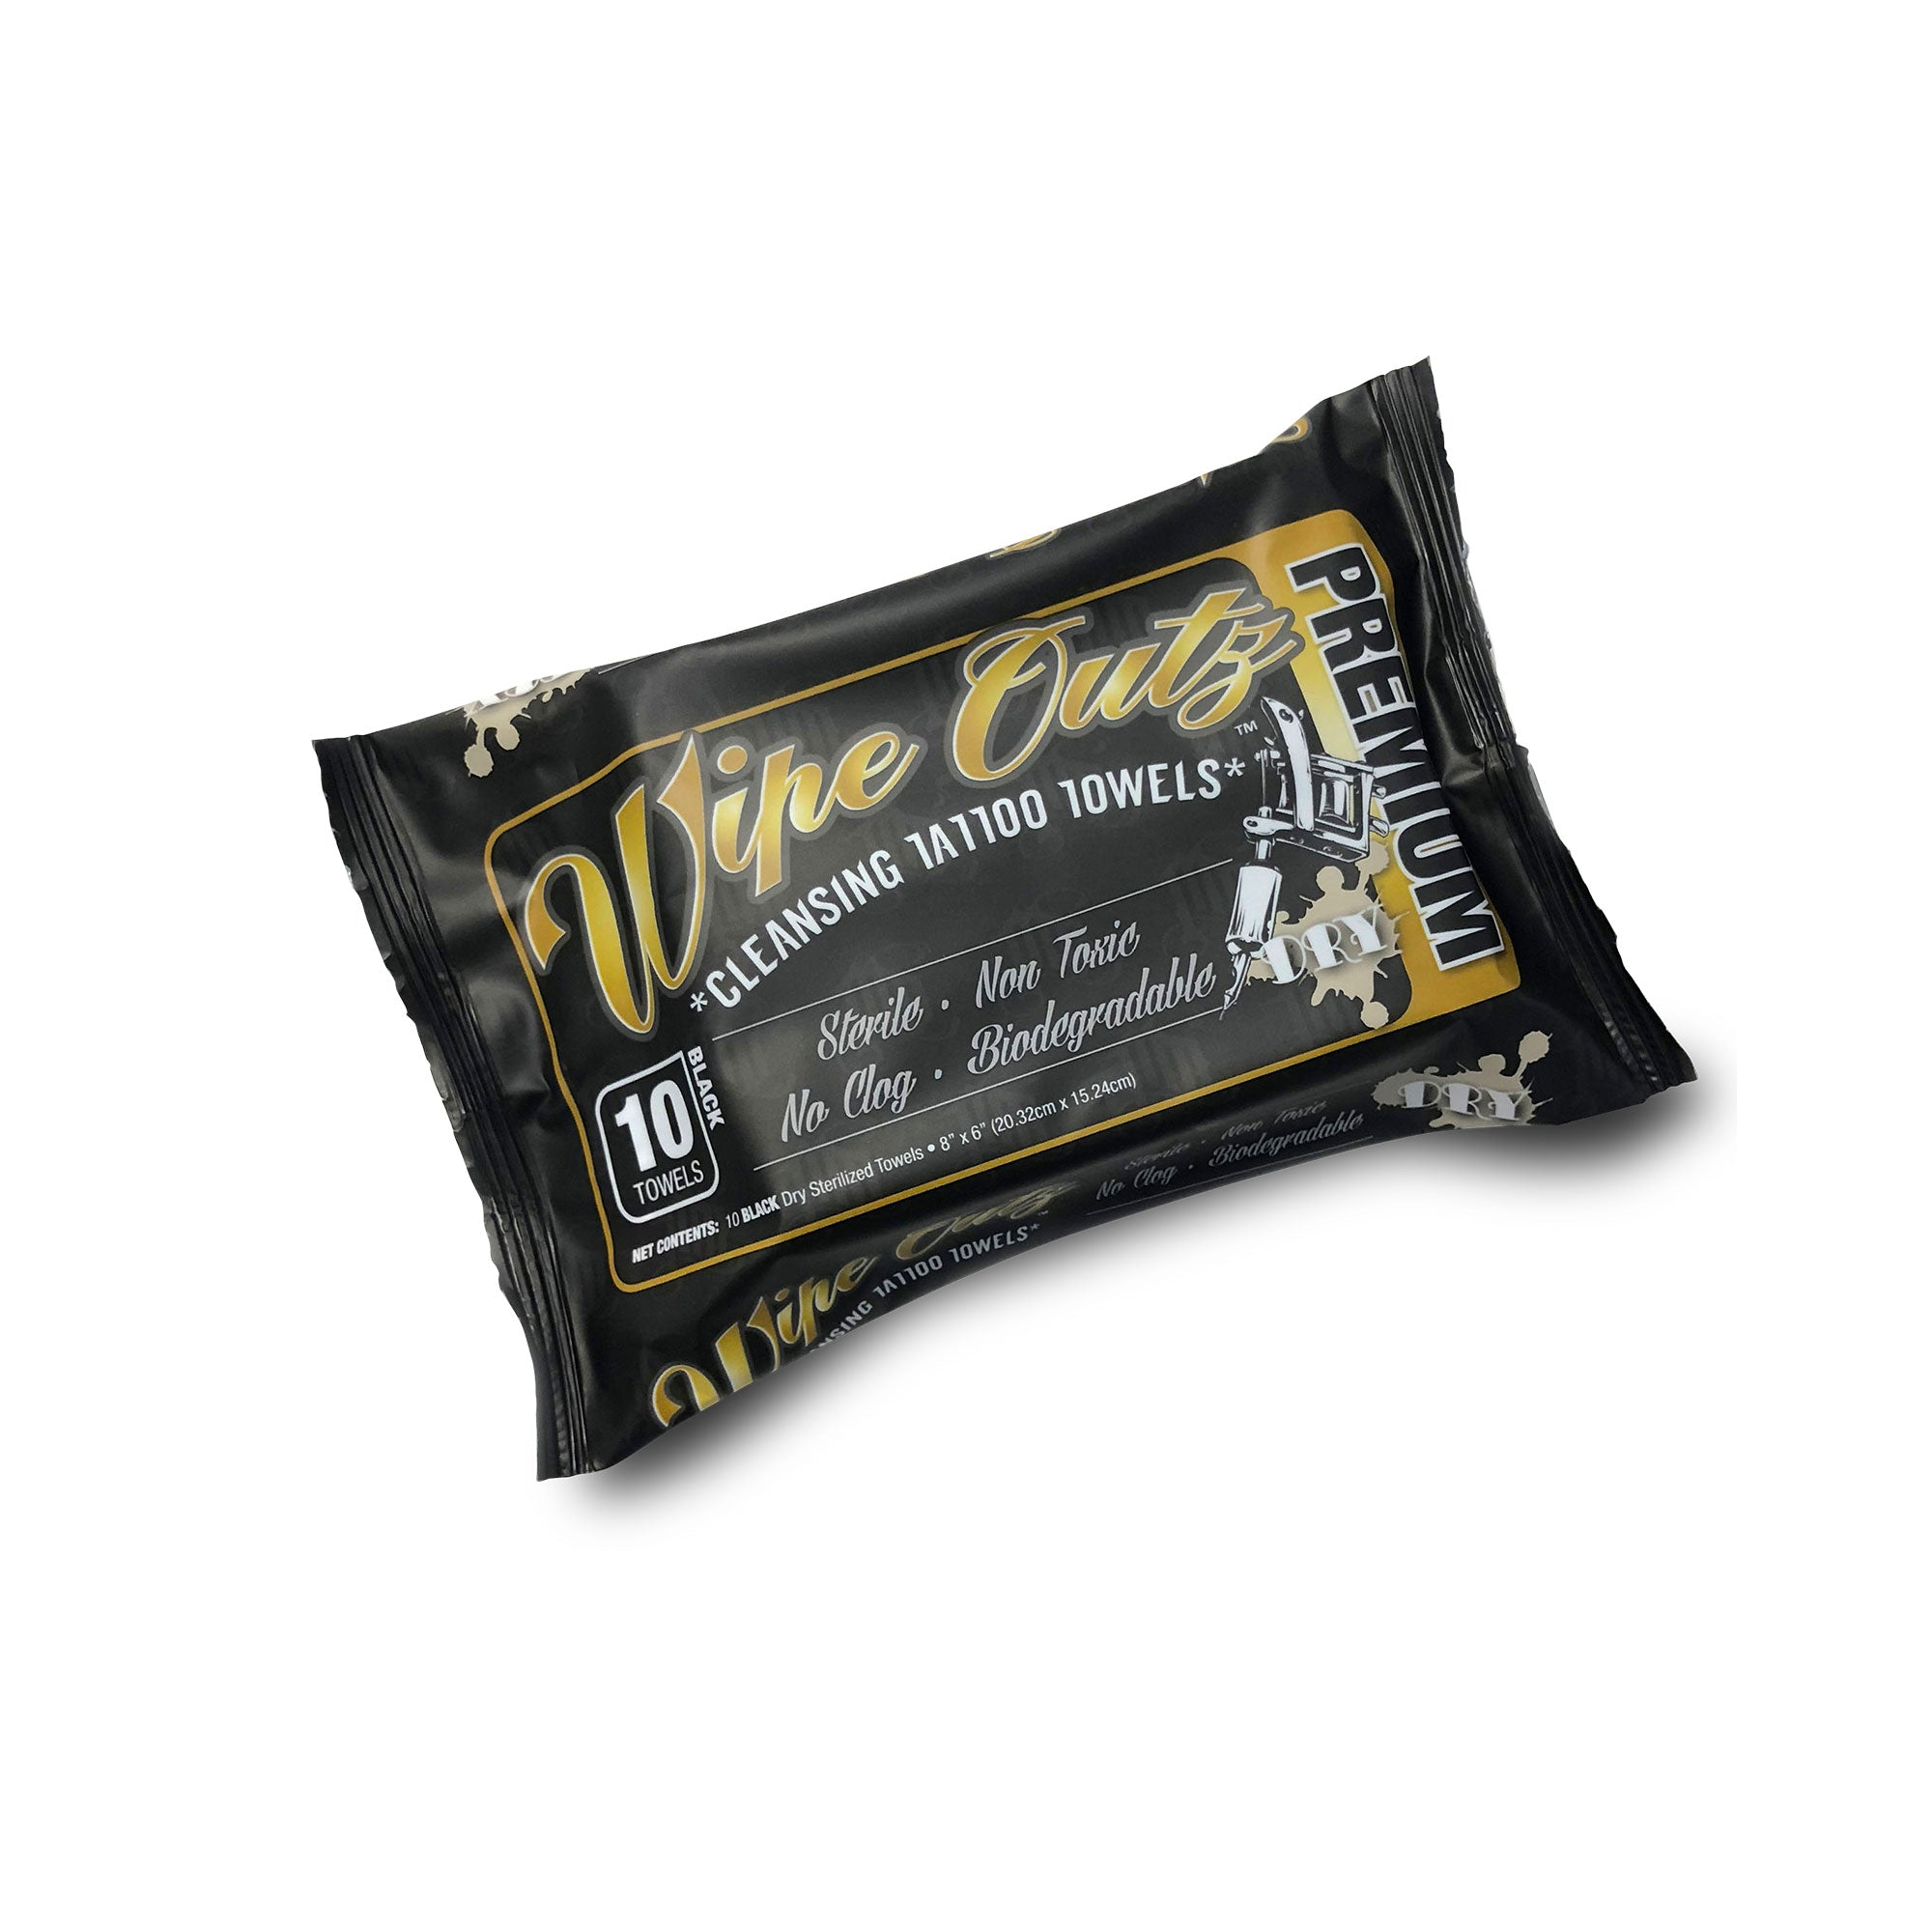 WIPE OUTZ DRY-Black Gamma-Sterilized Tattoo Towels